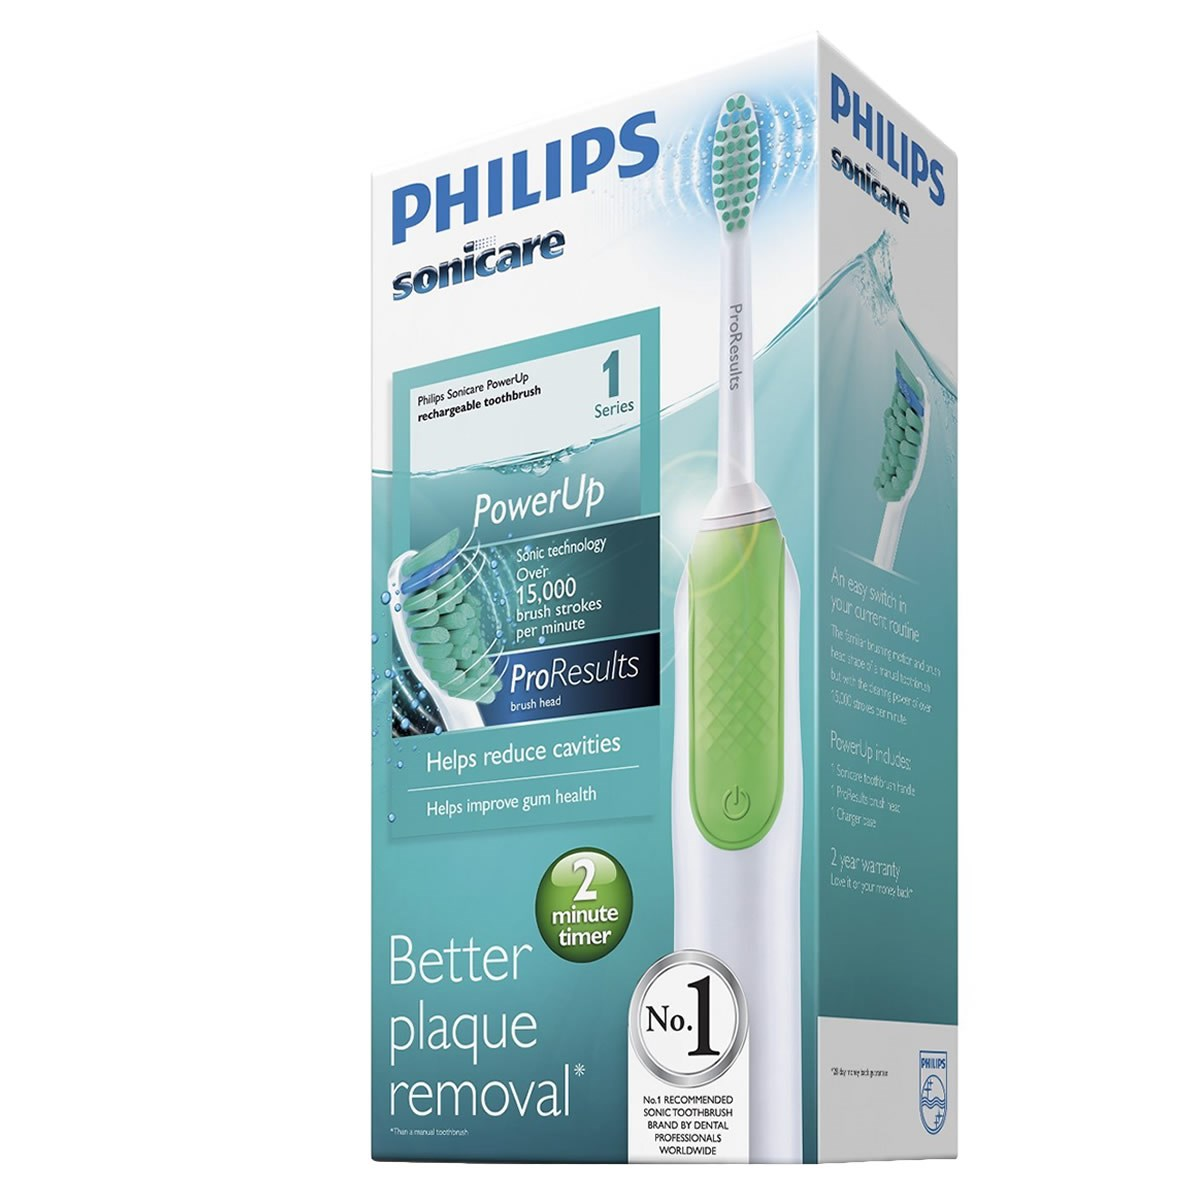 Philips Sonicare Power Up Rechargeable Toothbrush - ProResults Brush Heads